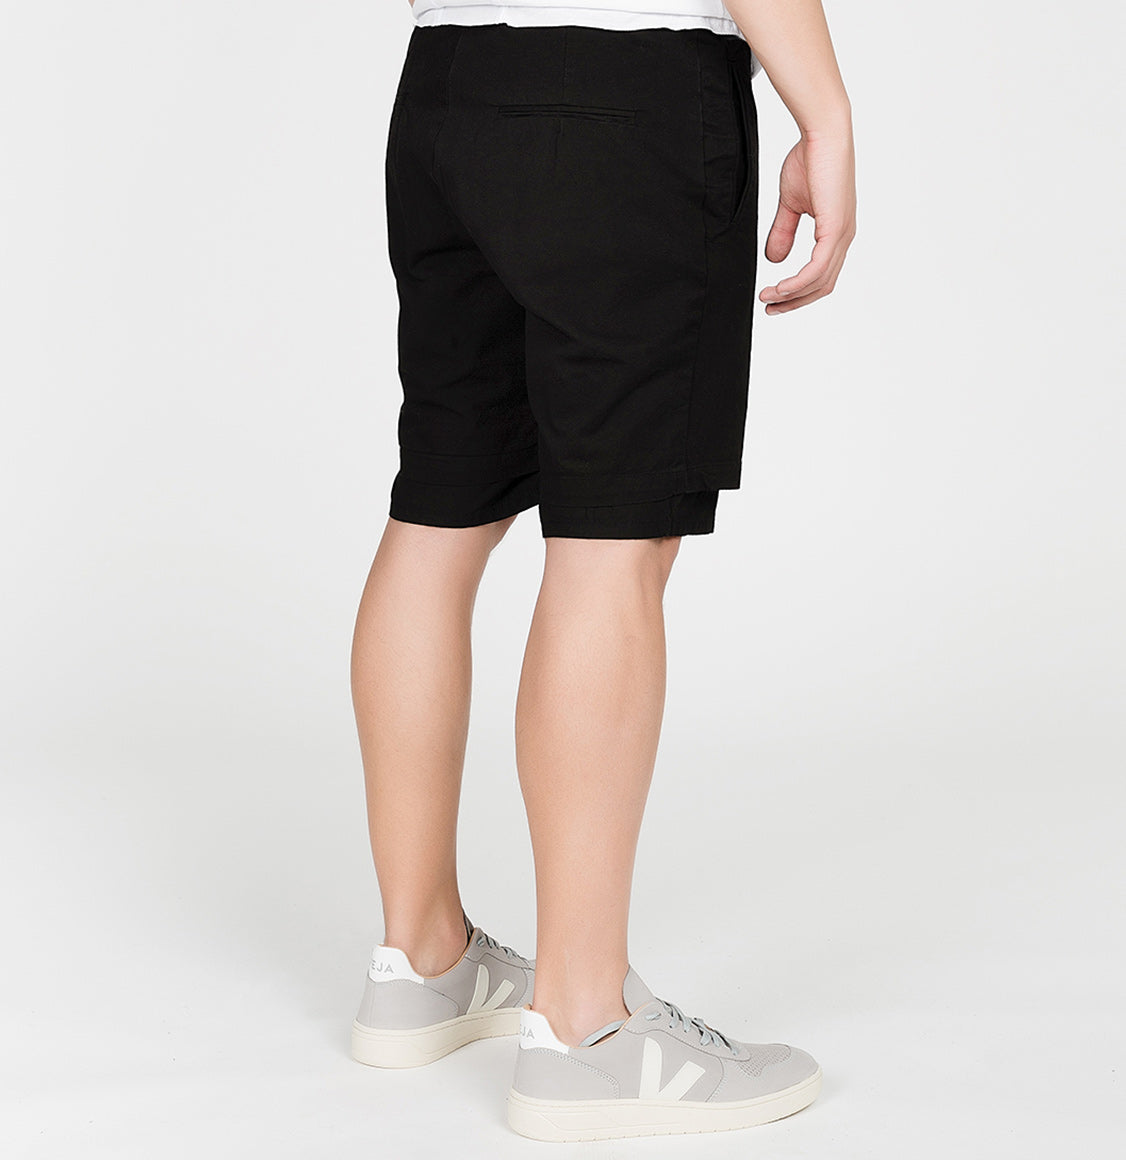 Double Layer Cotton Shorts Black | The Project Garments - C